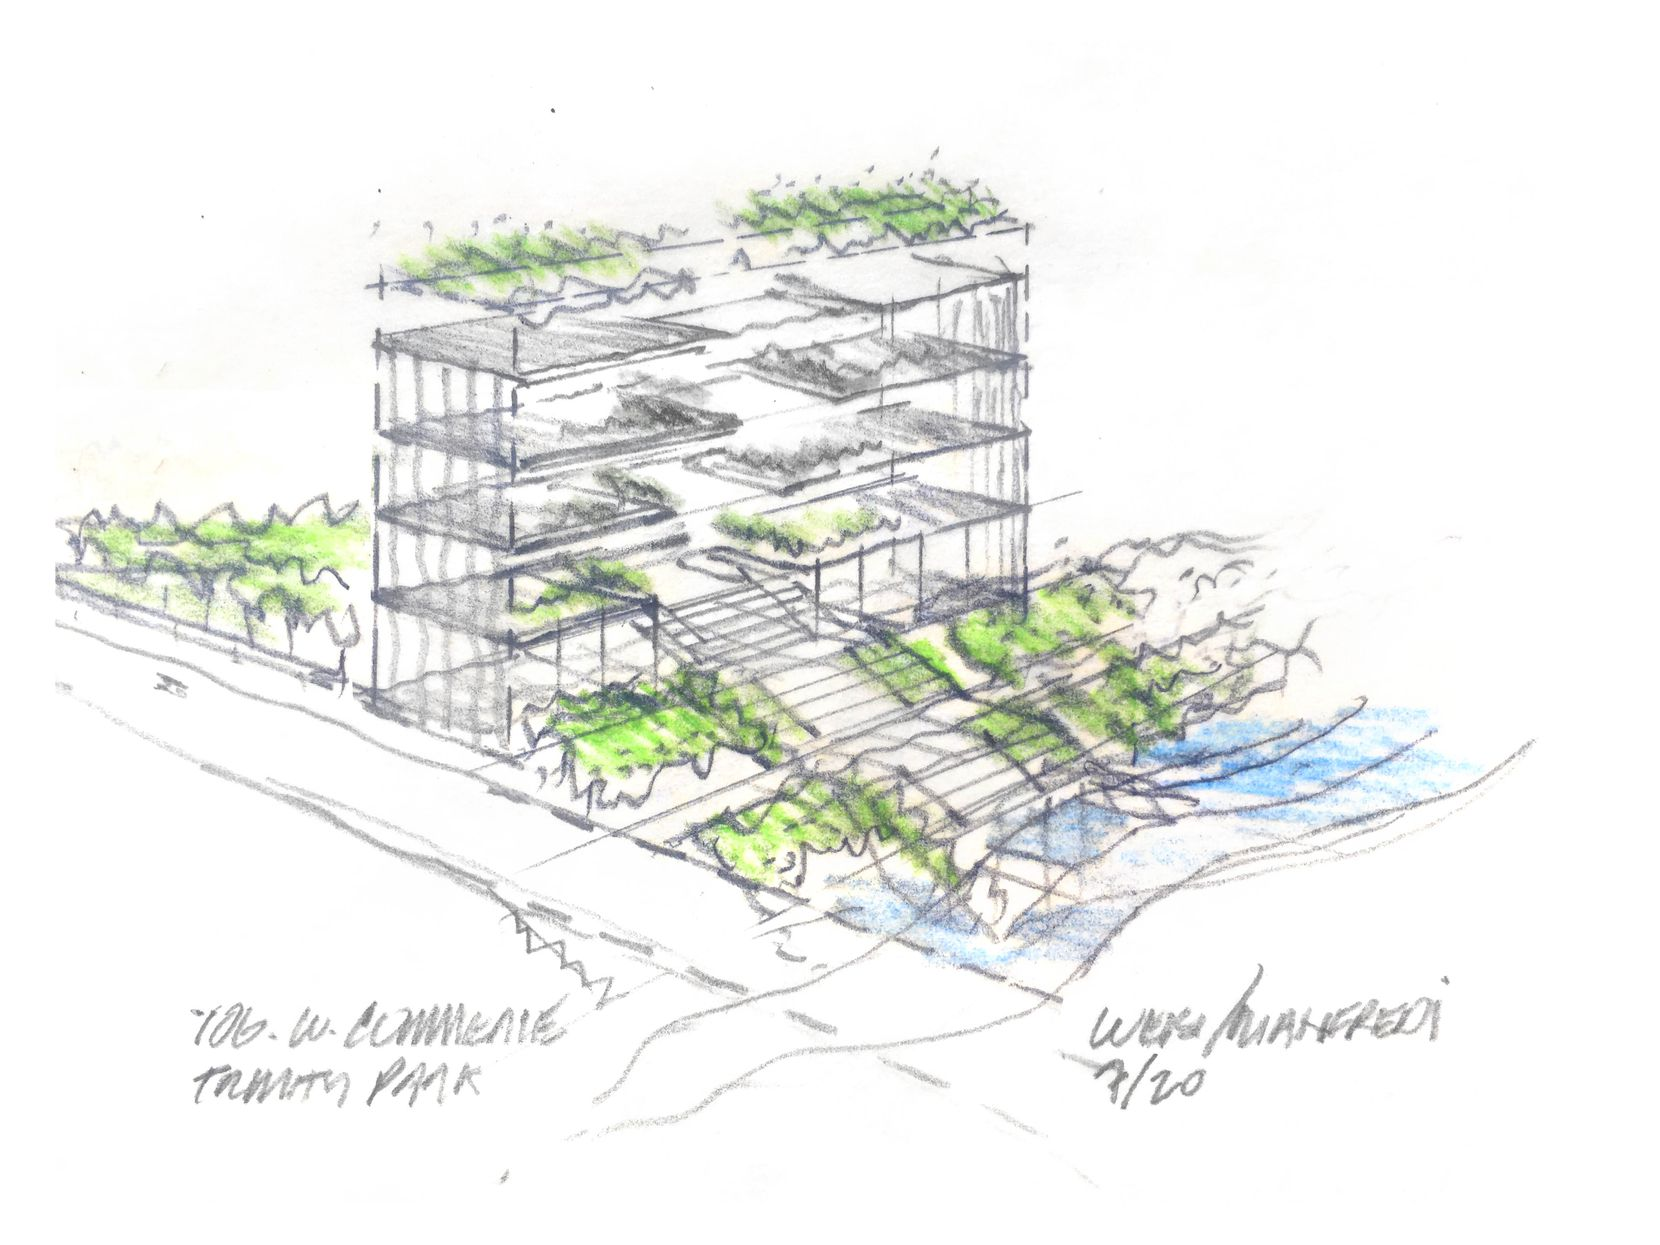 A sketch by Weiss/Manfredi architects shows design inspiration for its renovation of the former Dawson Jail on Commerce Street to help open it up to views of the Trinity.